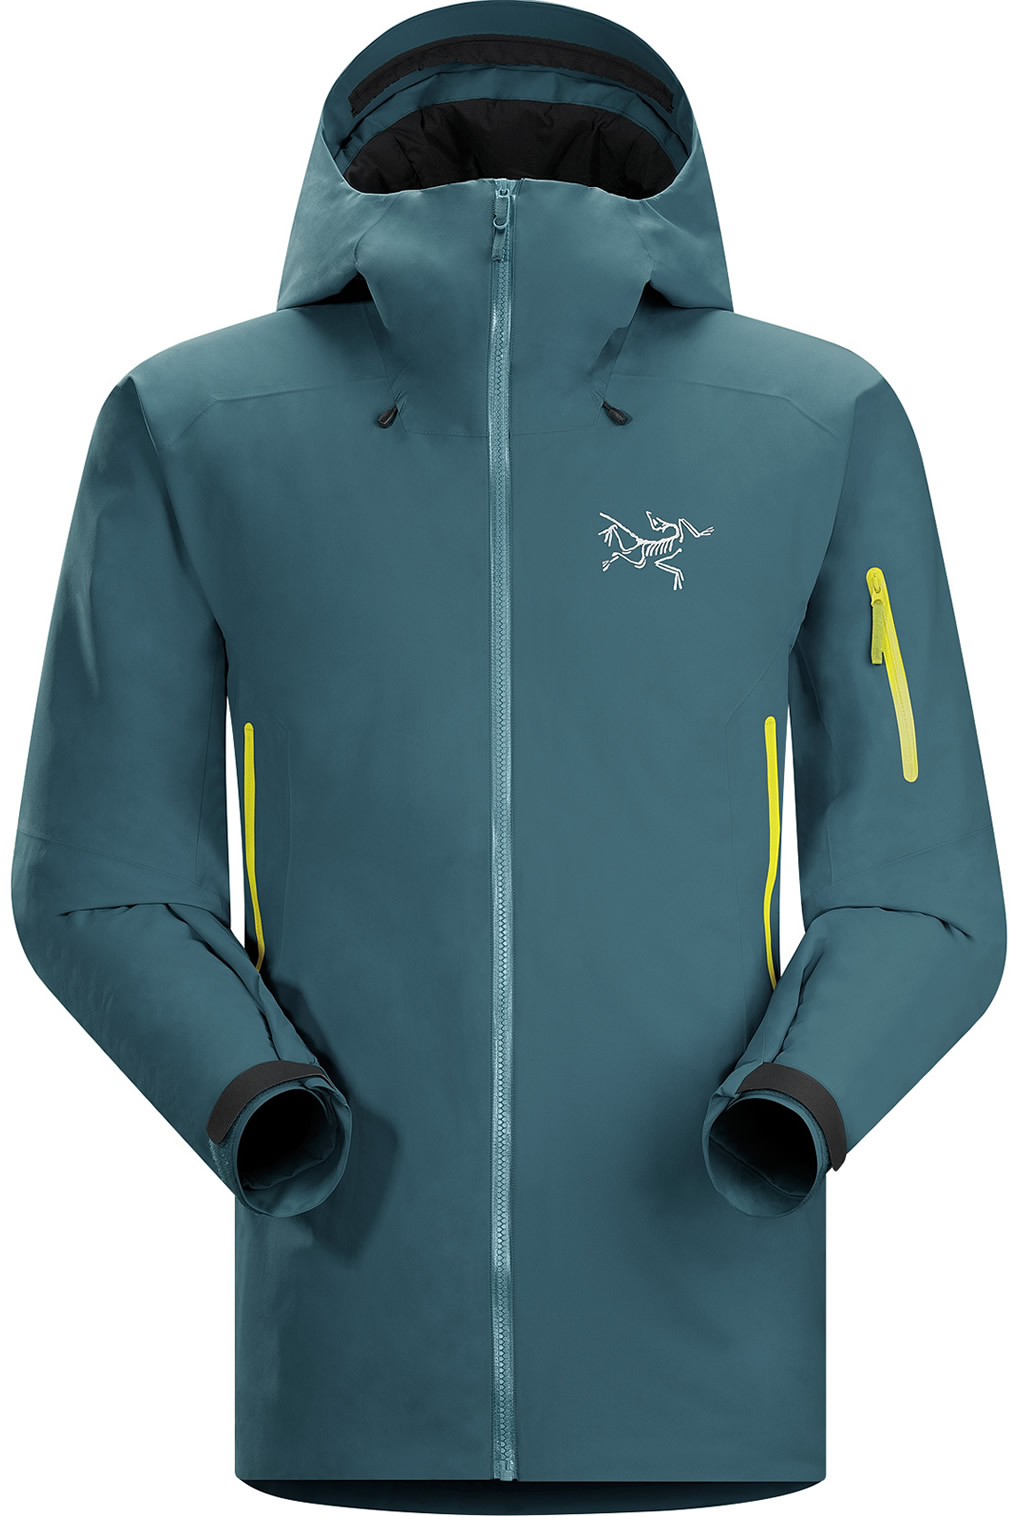 Hinto Fissile Gore-Tex Jacket